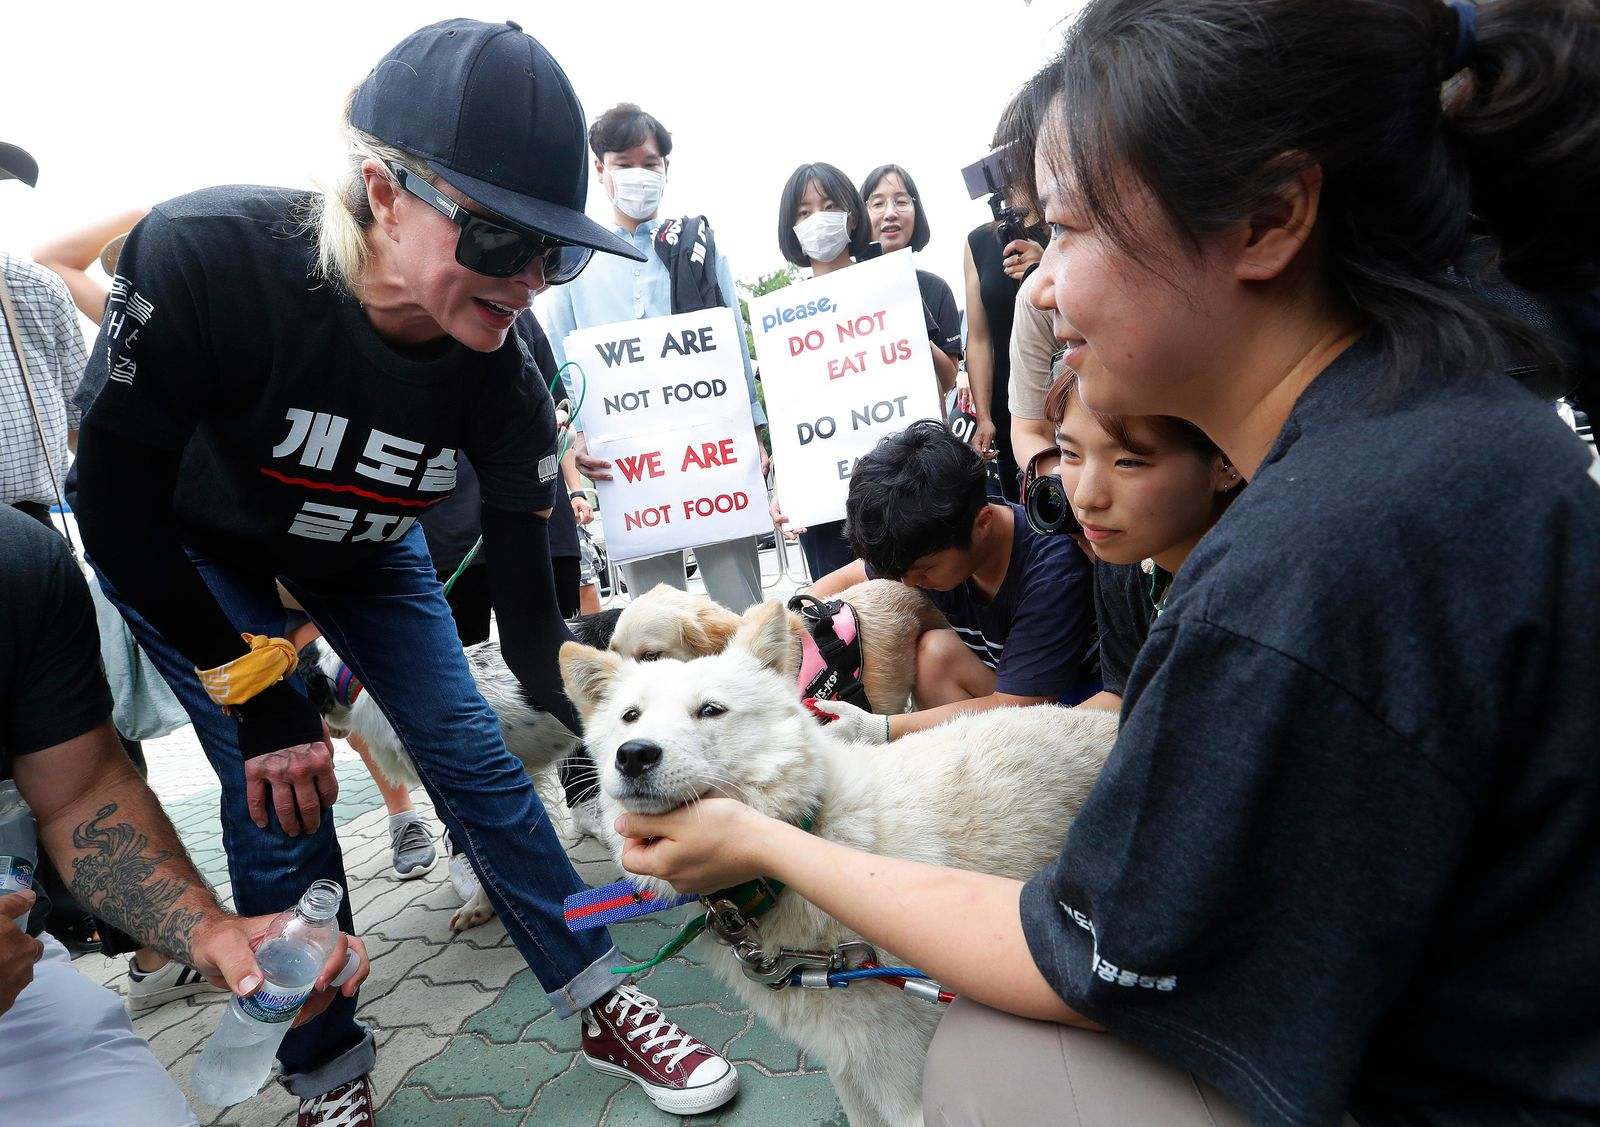 American actress Kim Basinger, left, watches a pet dog during a rally to oppose eating dog meat in front of the National Assembly in Seoul, South Korea, Friday, July 12, 2019. July 12 is the day South Koreans eat healthy foods such as dog meat in the belief it would help them survive heat during summer. (AP Photo/Ahn Young-joon)